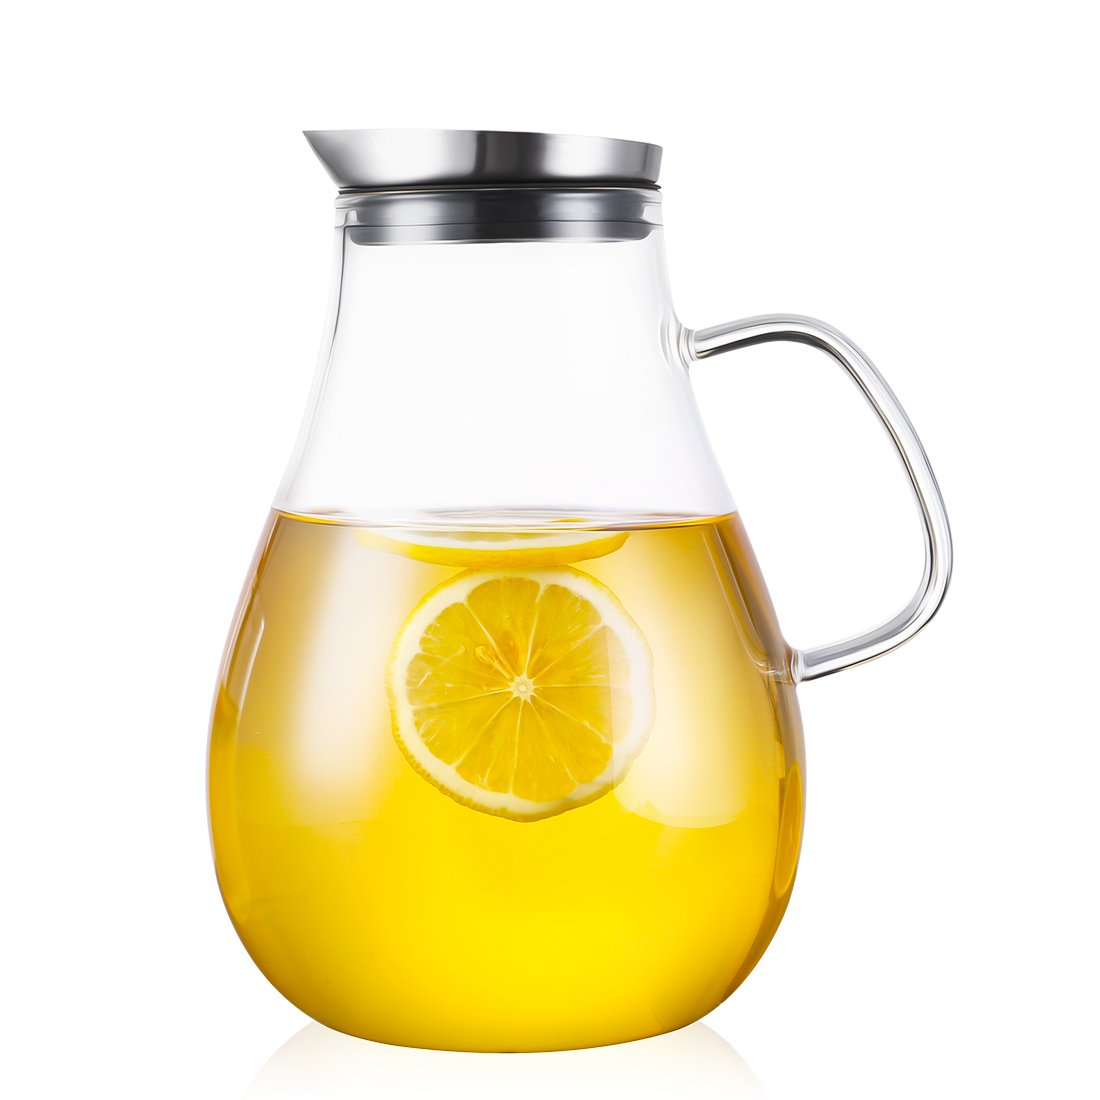 ONEISALL 85 Ounces Large Heat Resistant Glass Beverage Pitcher with Stainless Steel Lid, Borosilicate Water Carafe with Spout and Handle, Perfect for Homemade Juice & Iced Tea by Weisier (Image #7)